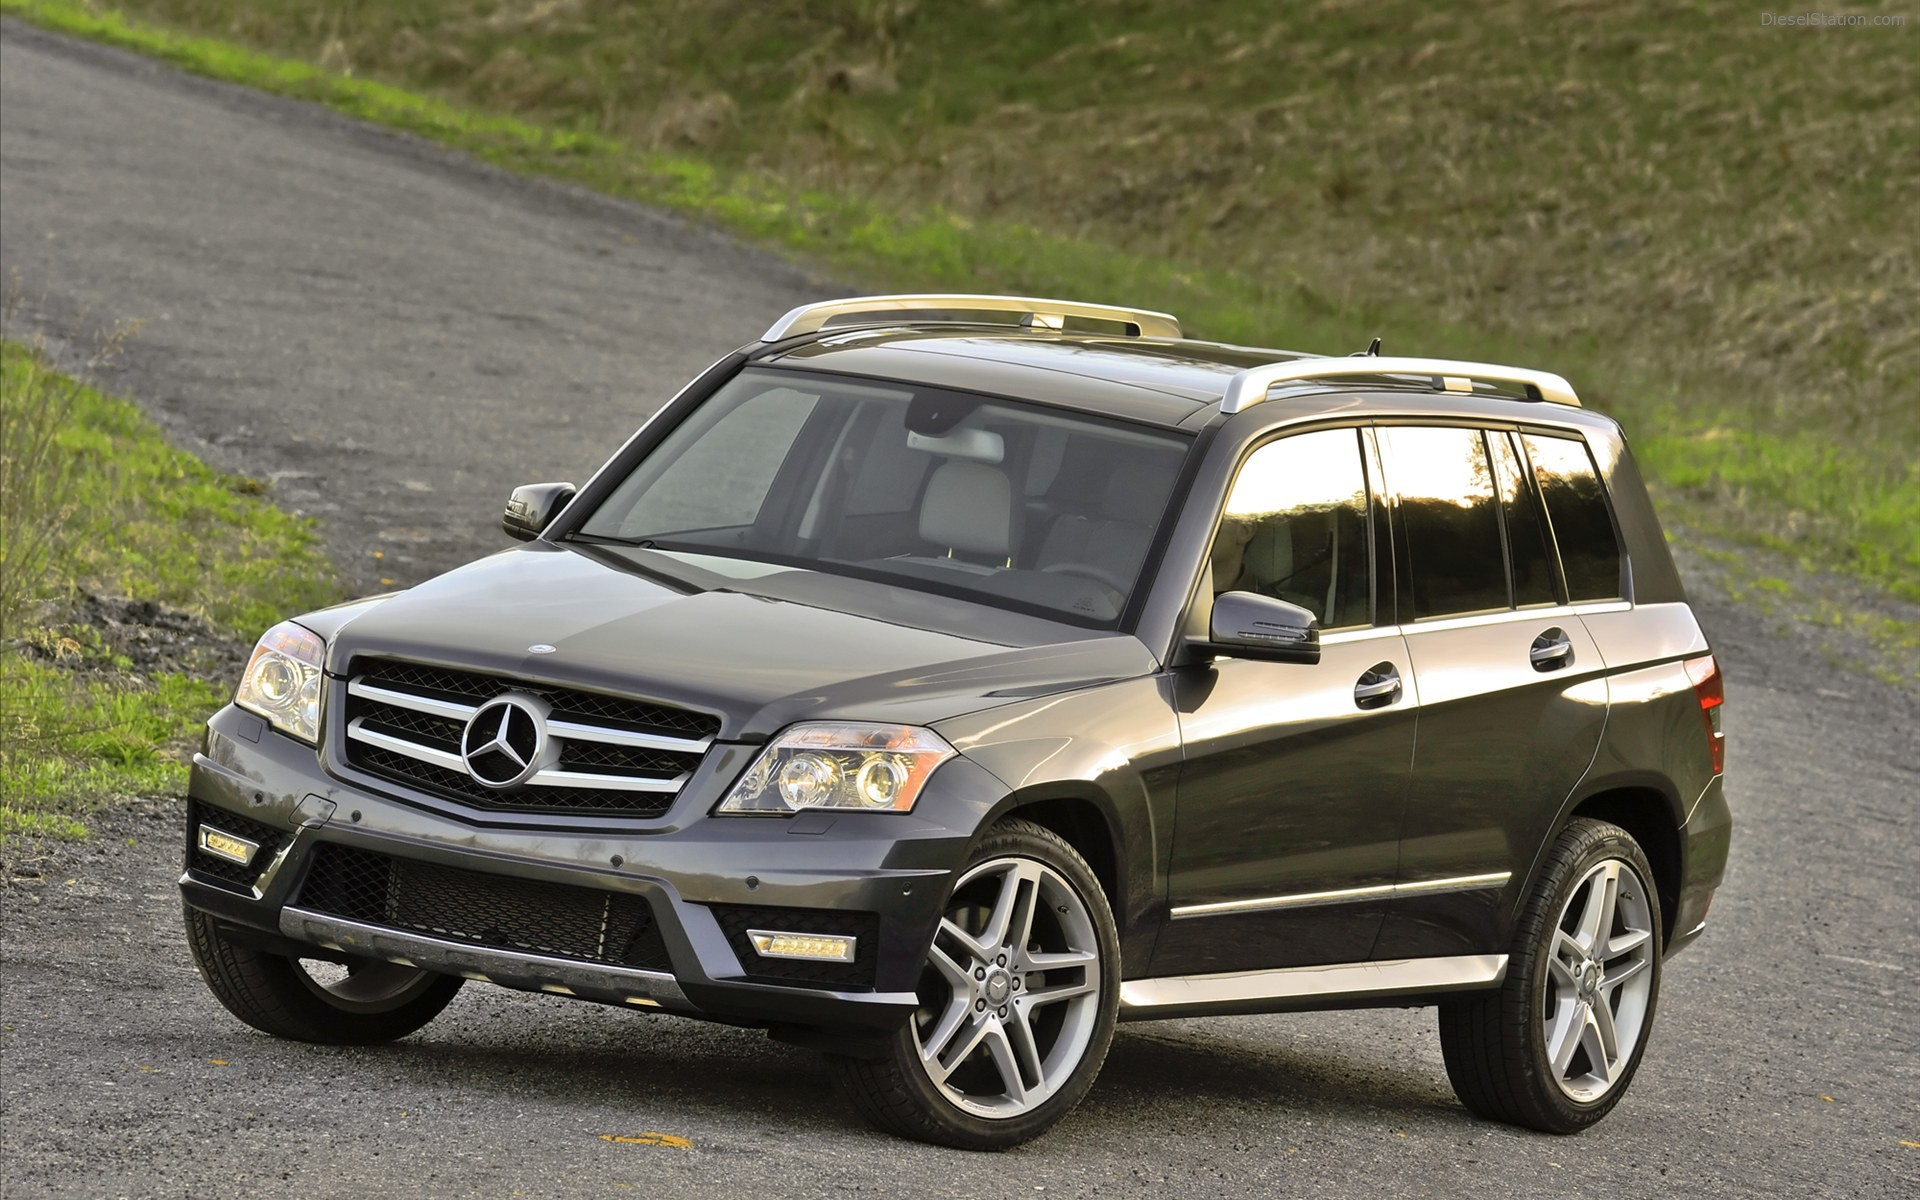 2017 mercedes benz glk350 4matic car photos catalog 2018